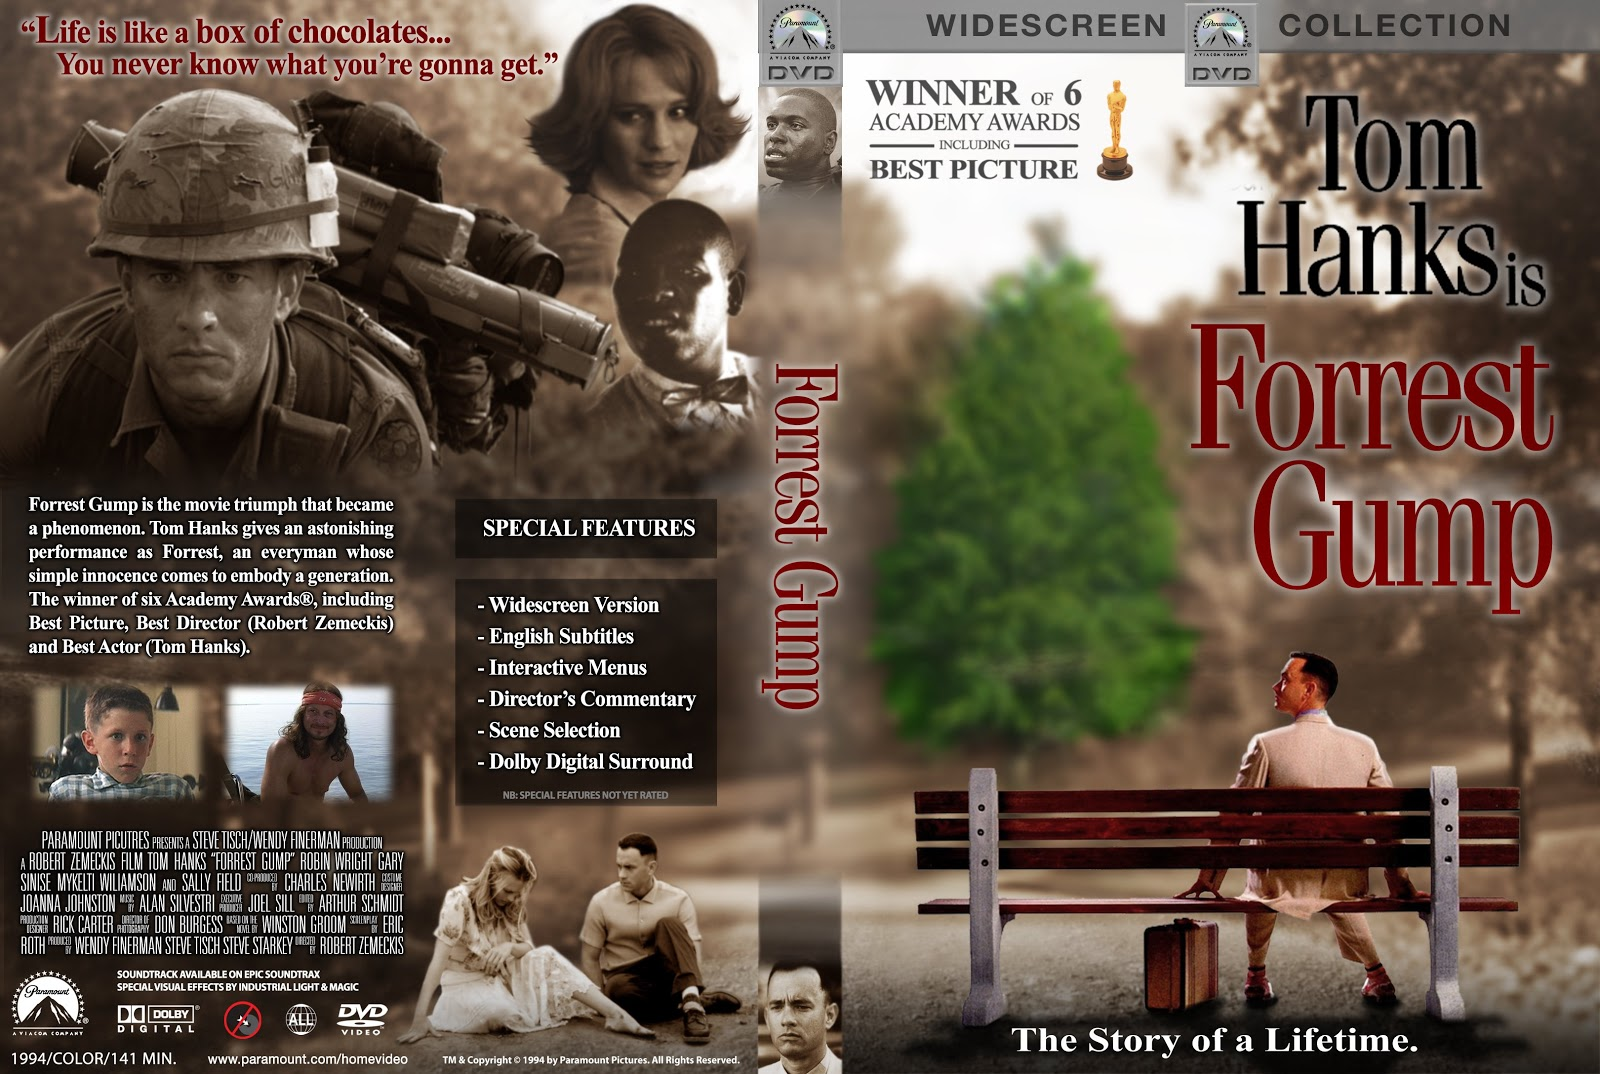 forrest gump film essay You have not saved any essays forrest gump is the story of a man who overcomes numerous obstacles throughout different stages of his life and always seems to see the brighter side of things in the process through the movie's entirety, outstanding performances from various award winning actors.